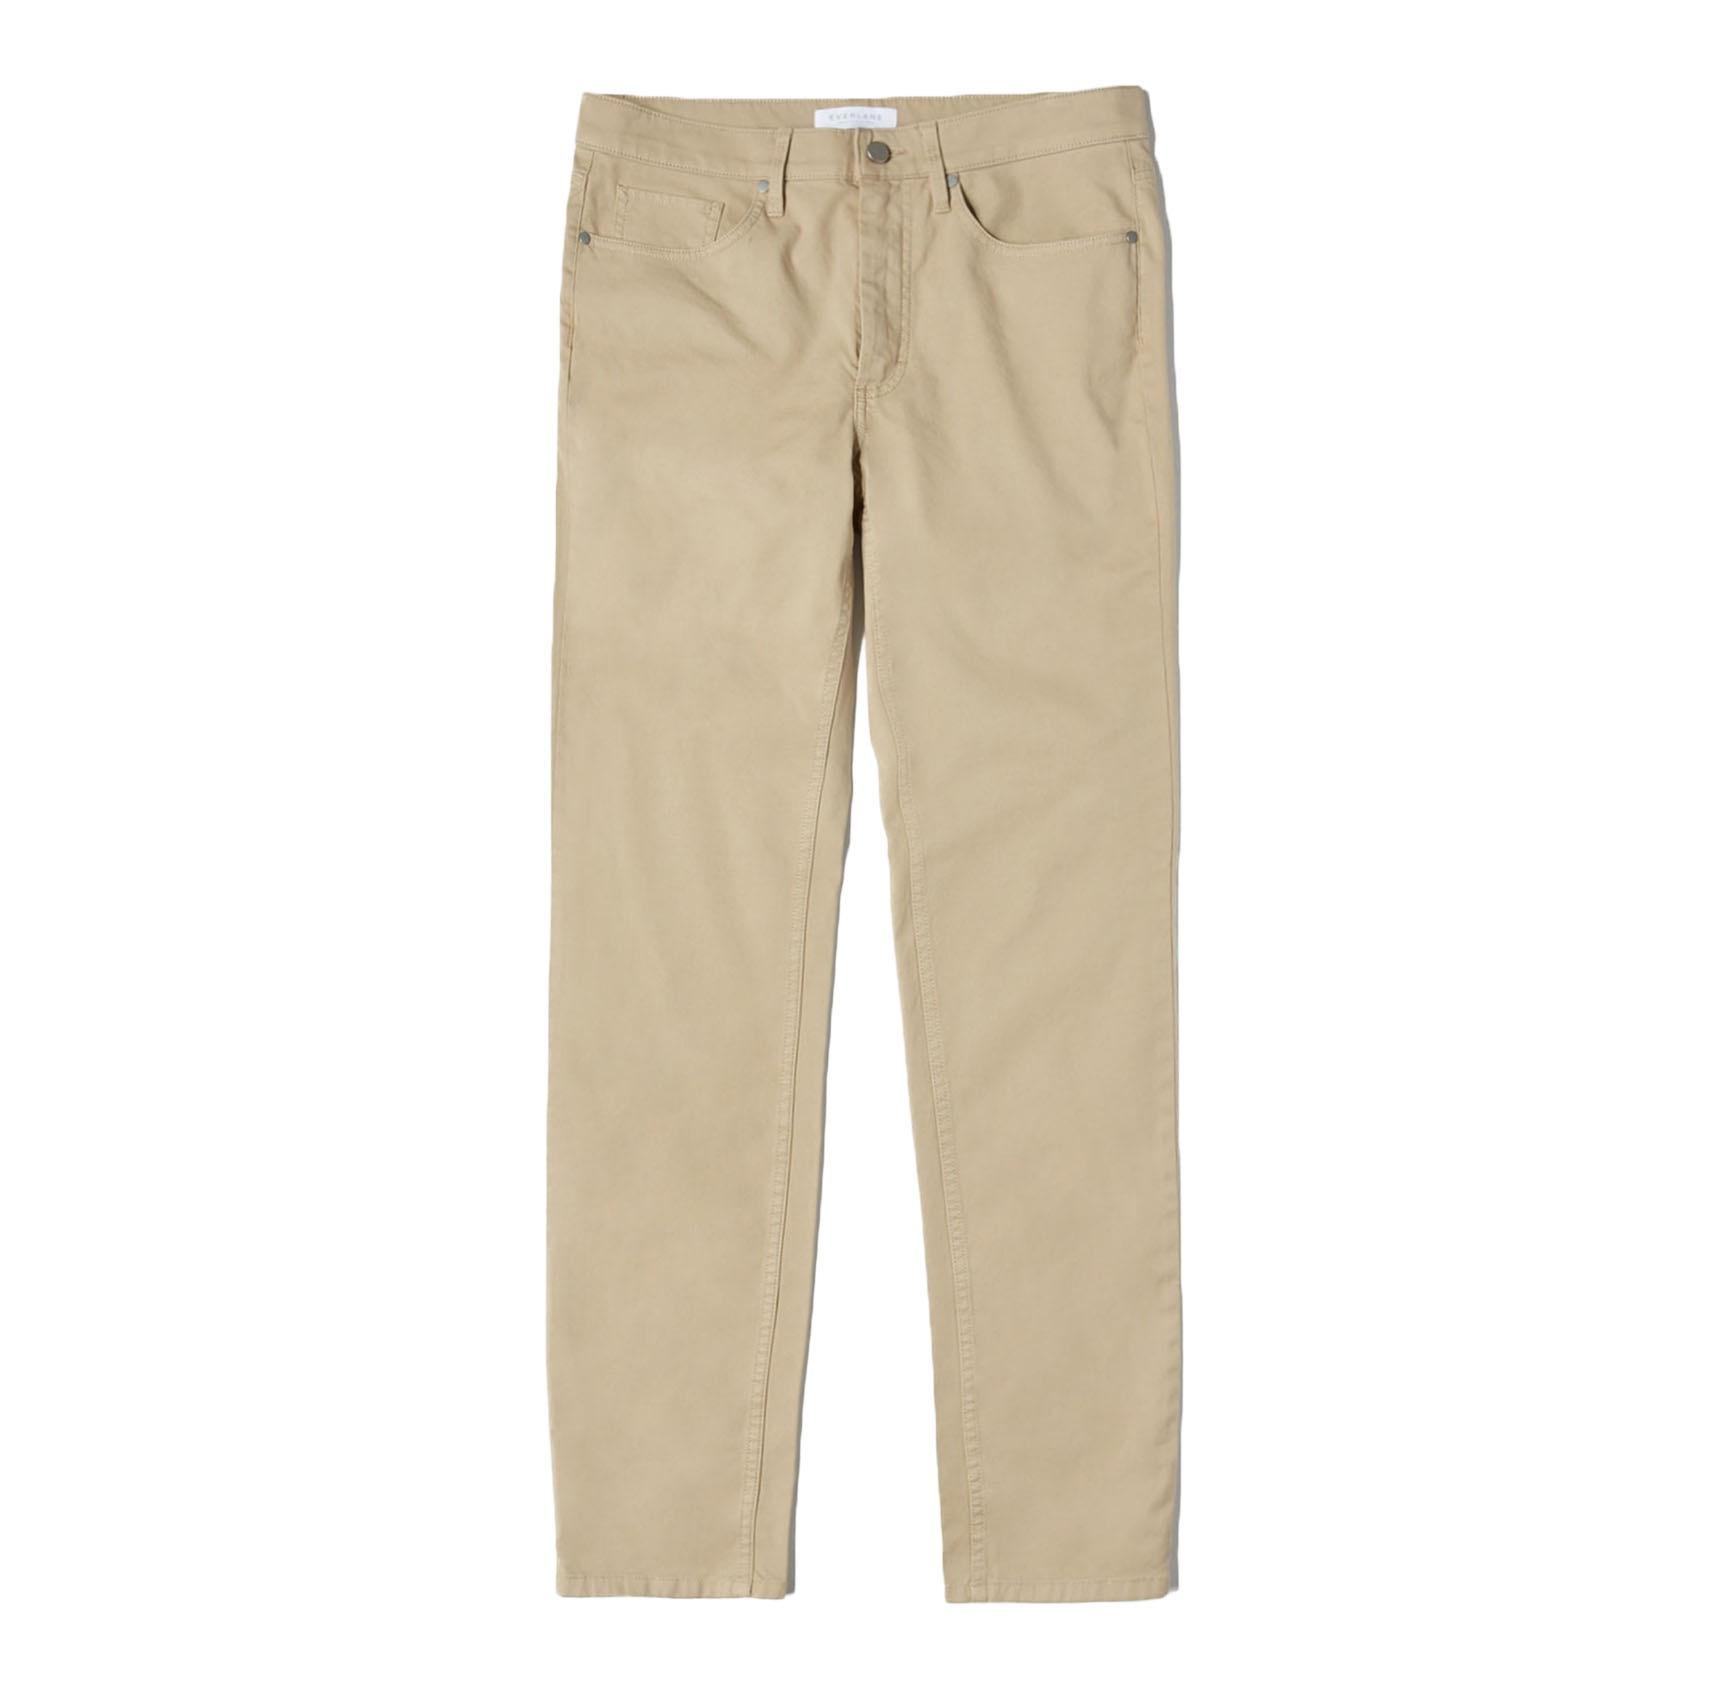 everlane beige pants